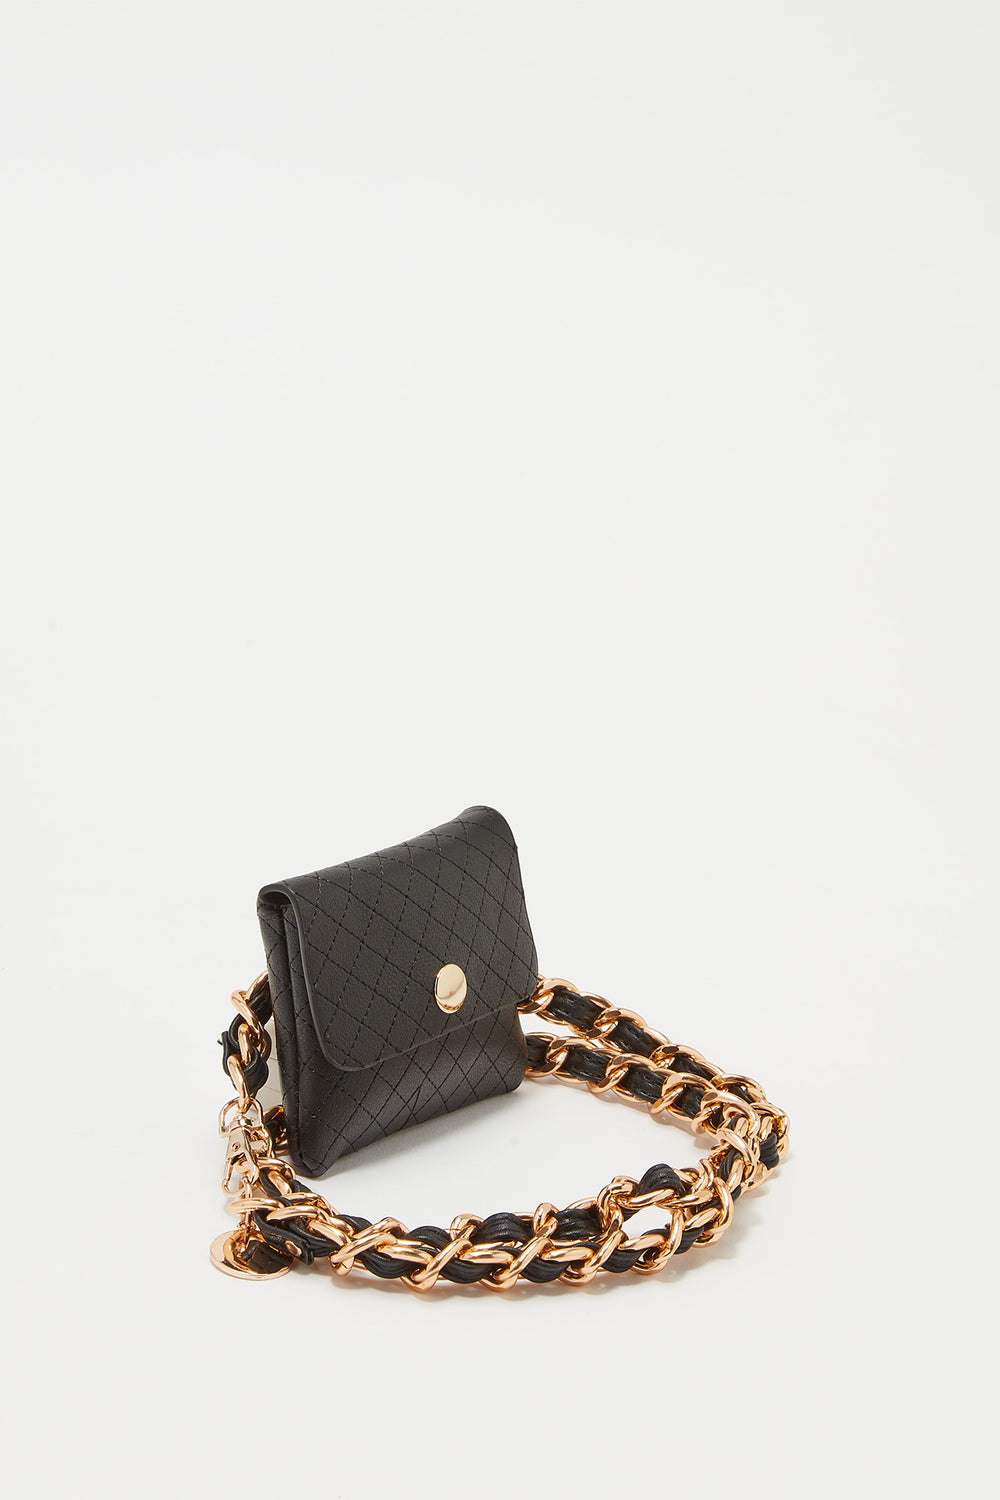 Chain Belt Coin Purse Black